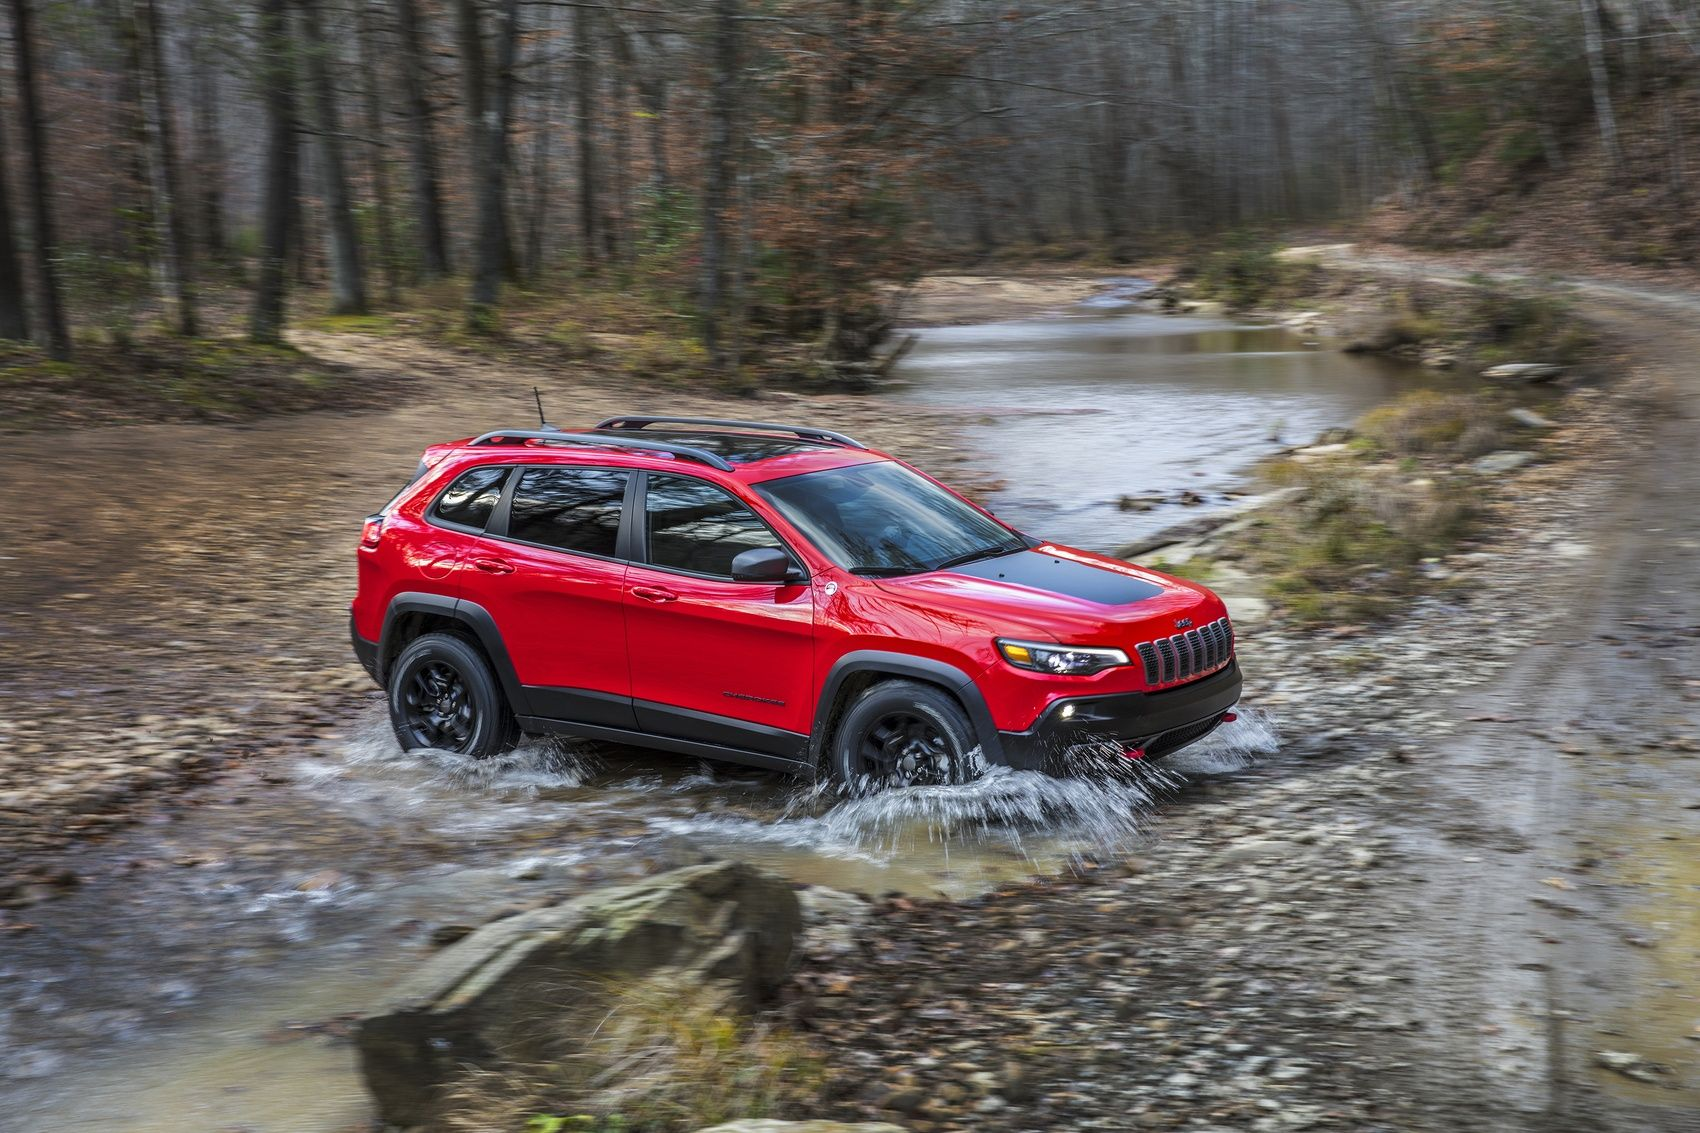 2019 Jeep Cherokee Trailhawk Review Pavement Not Required Jeep Cherokee Trailhawk Jeep Cherokee New Jeep Cherokee